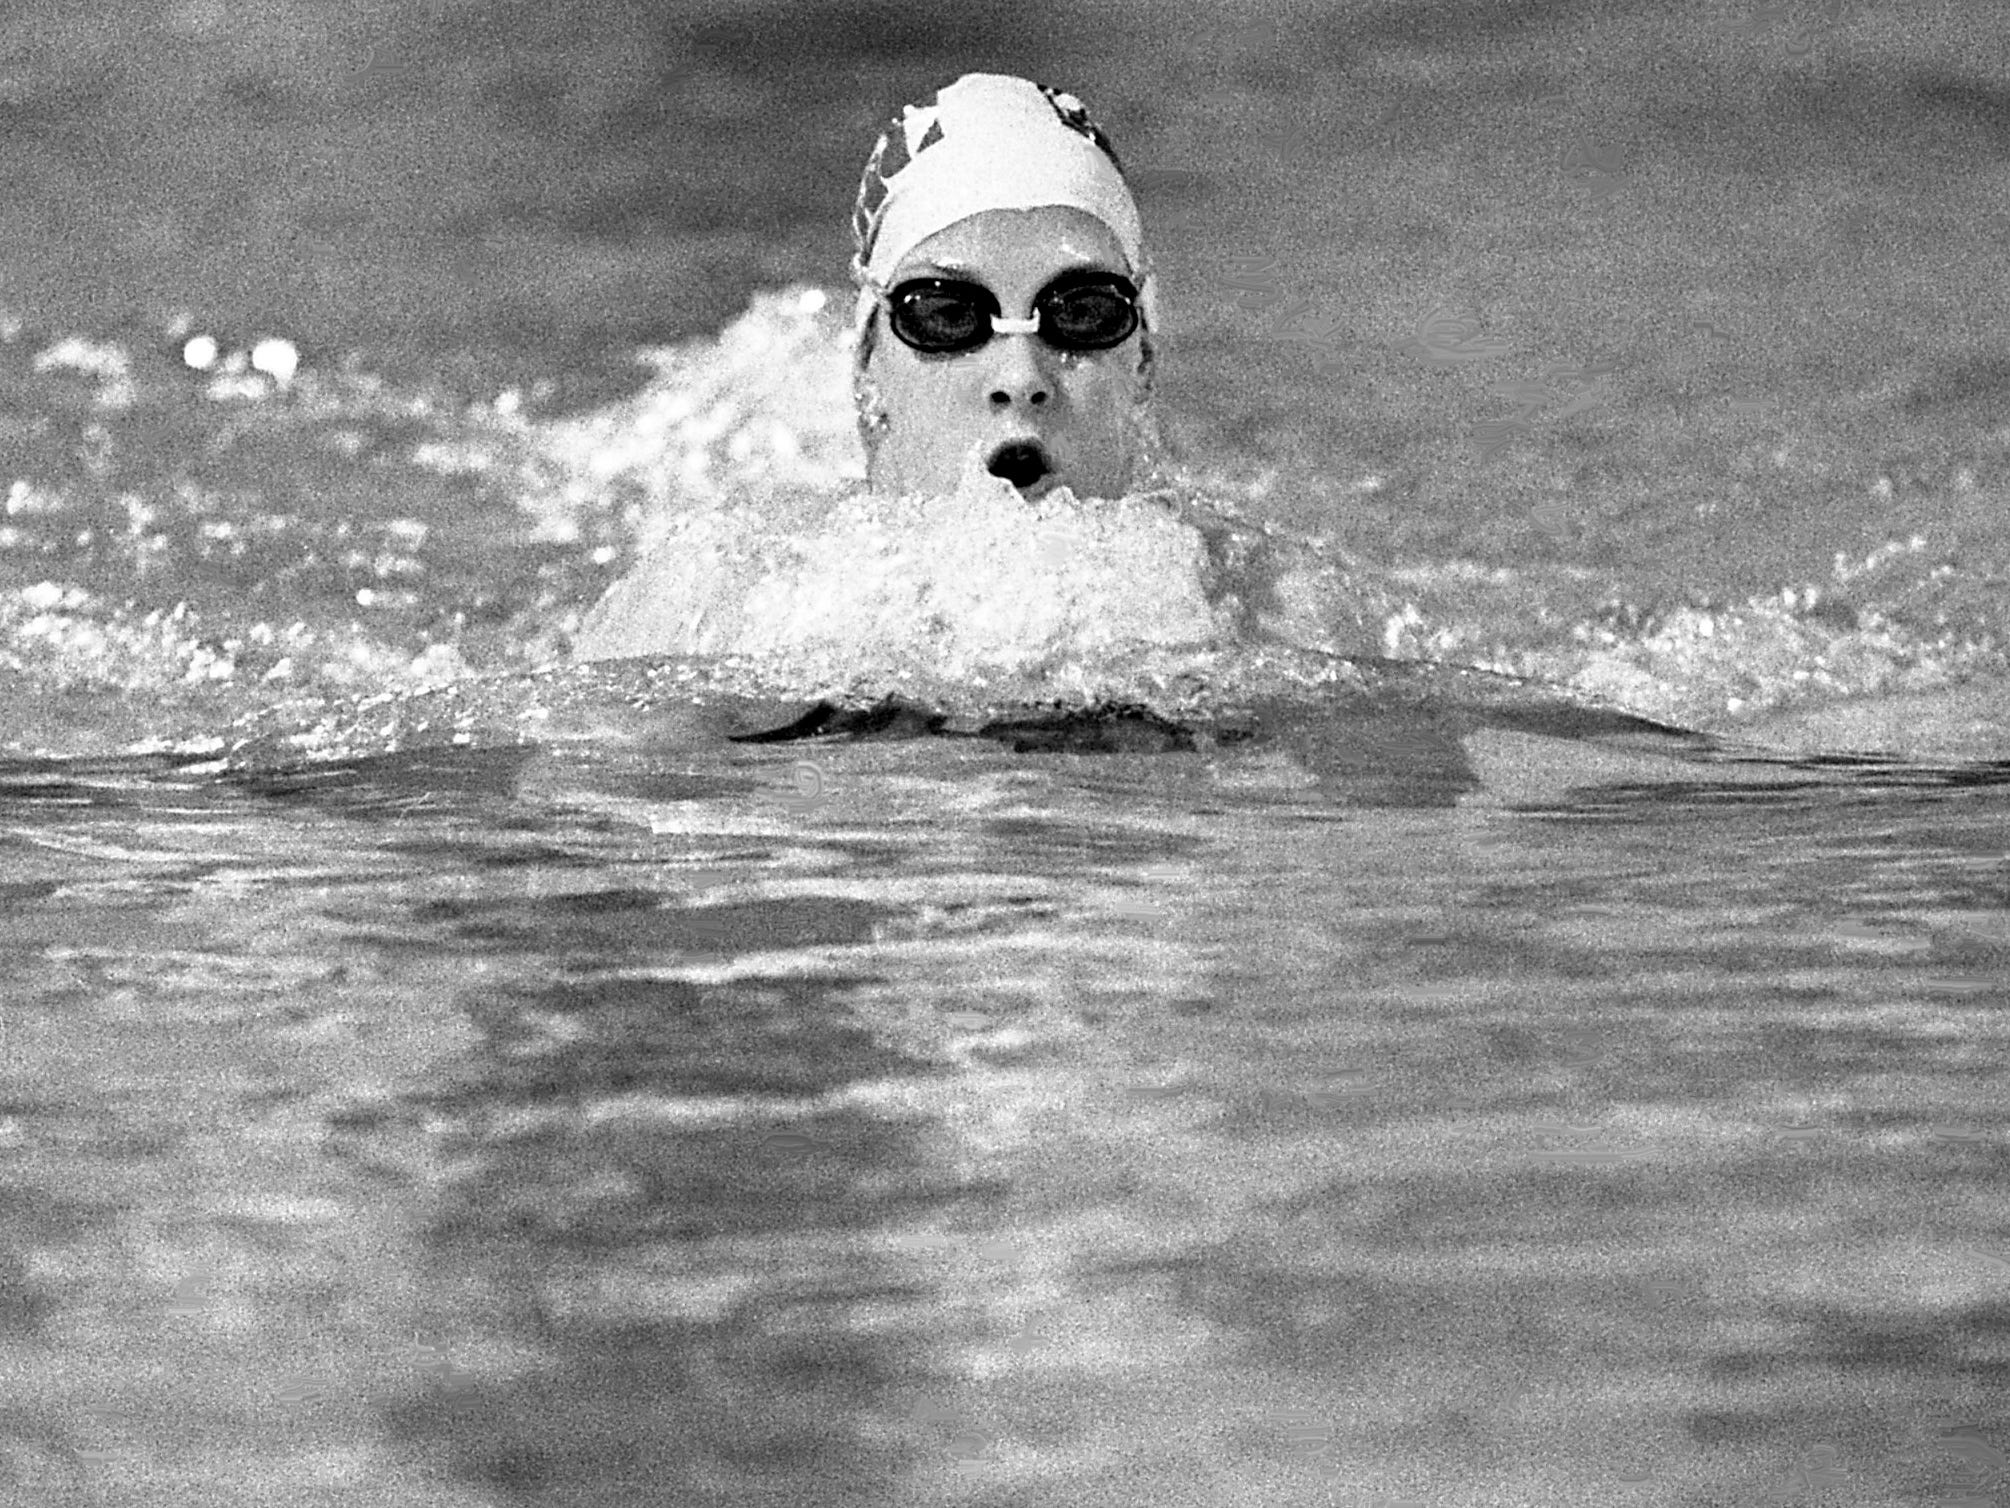 Swimming sensation Tracy Caulkins of the Nashville Aquatic Club is competing in one of the breaststroke events during the NAC's second annual International Invitational swimming meet at the club's pool Jan. 12, 1979.